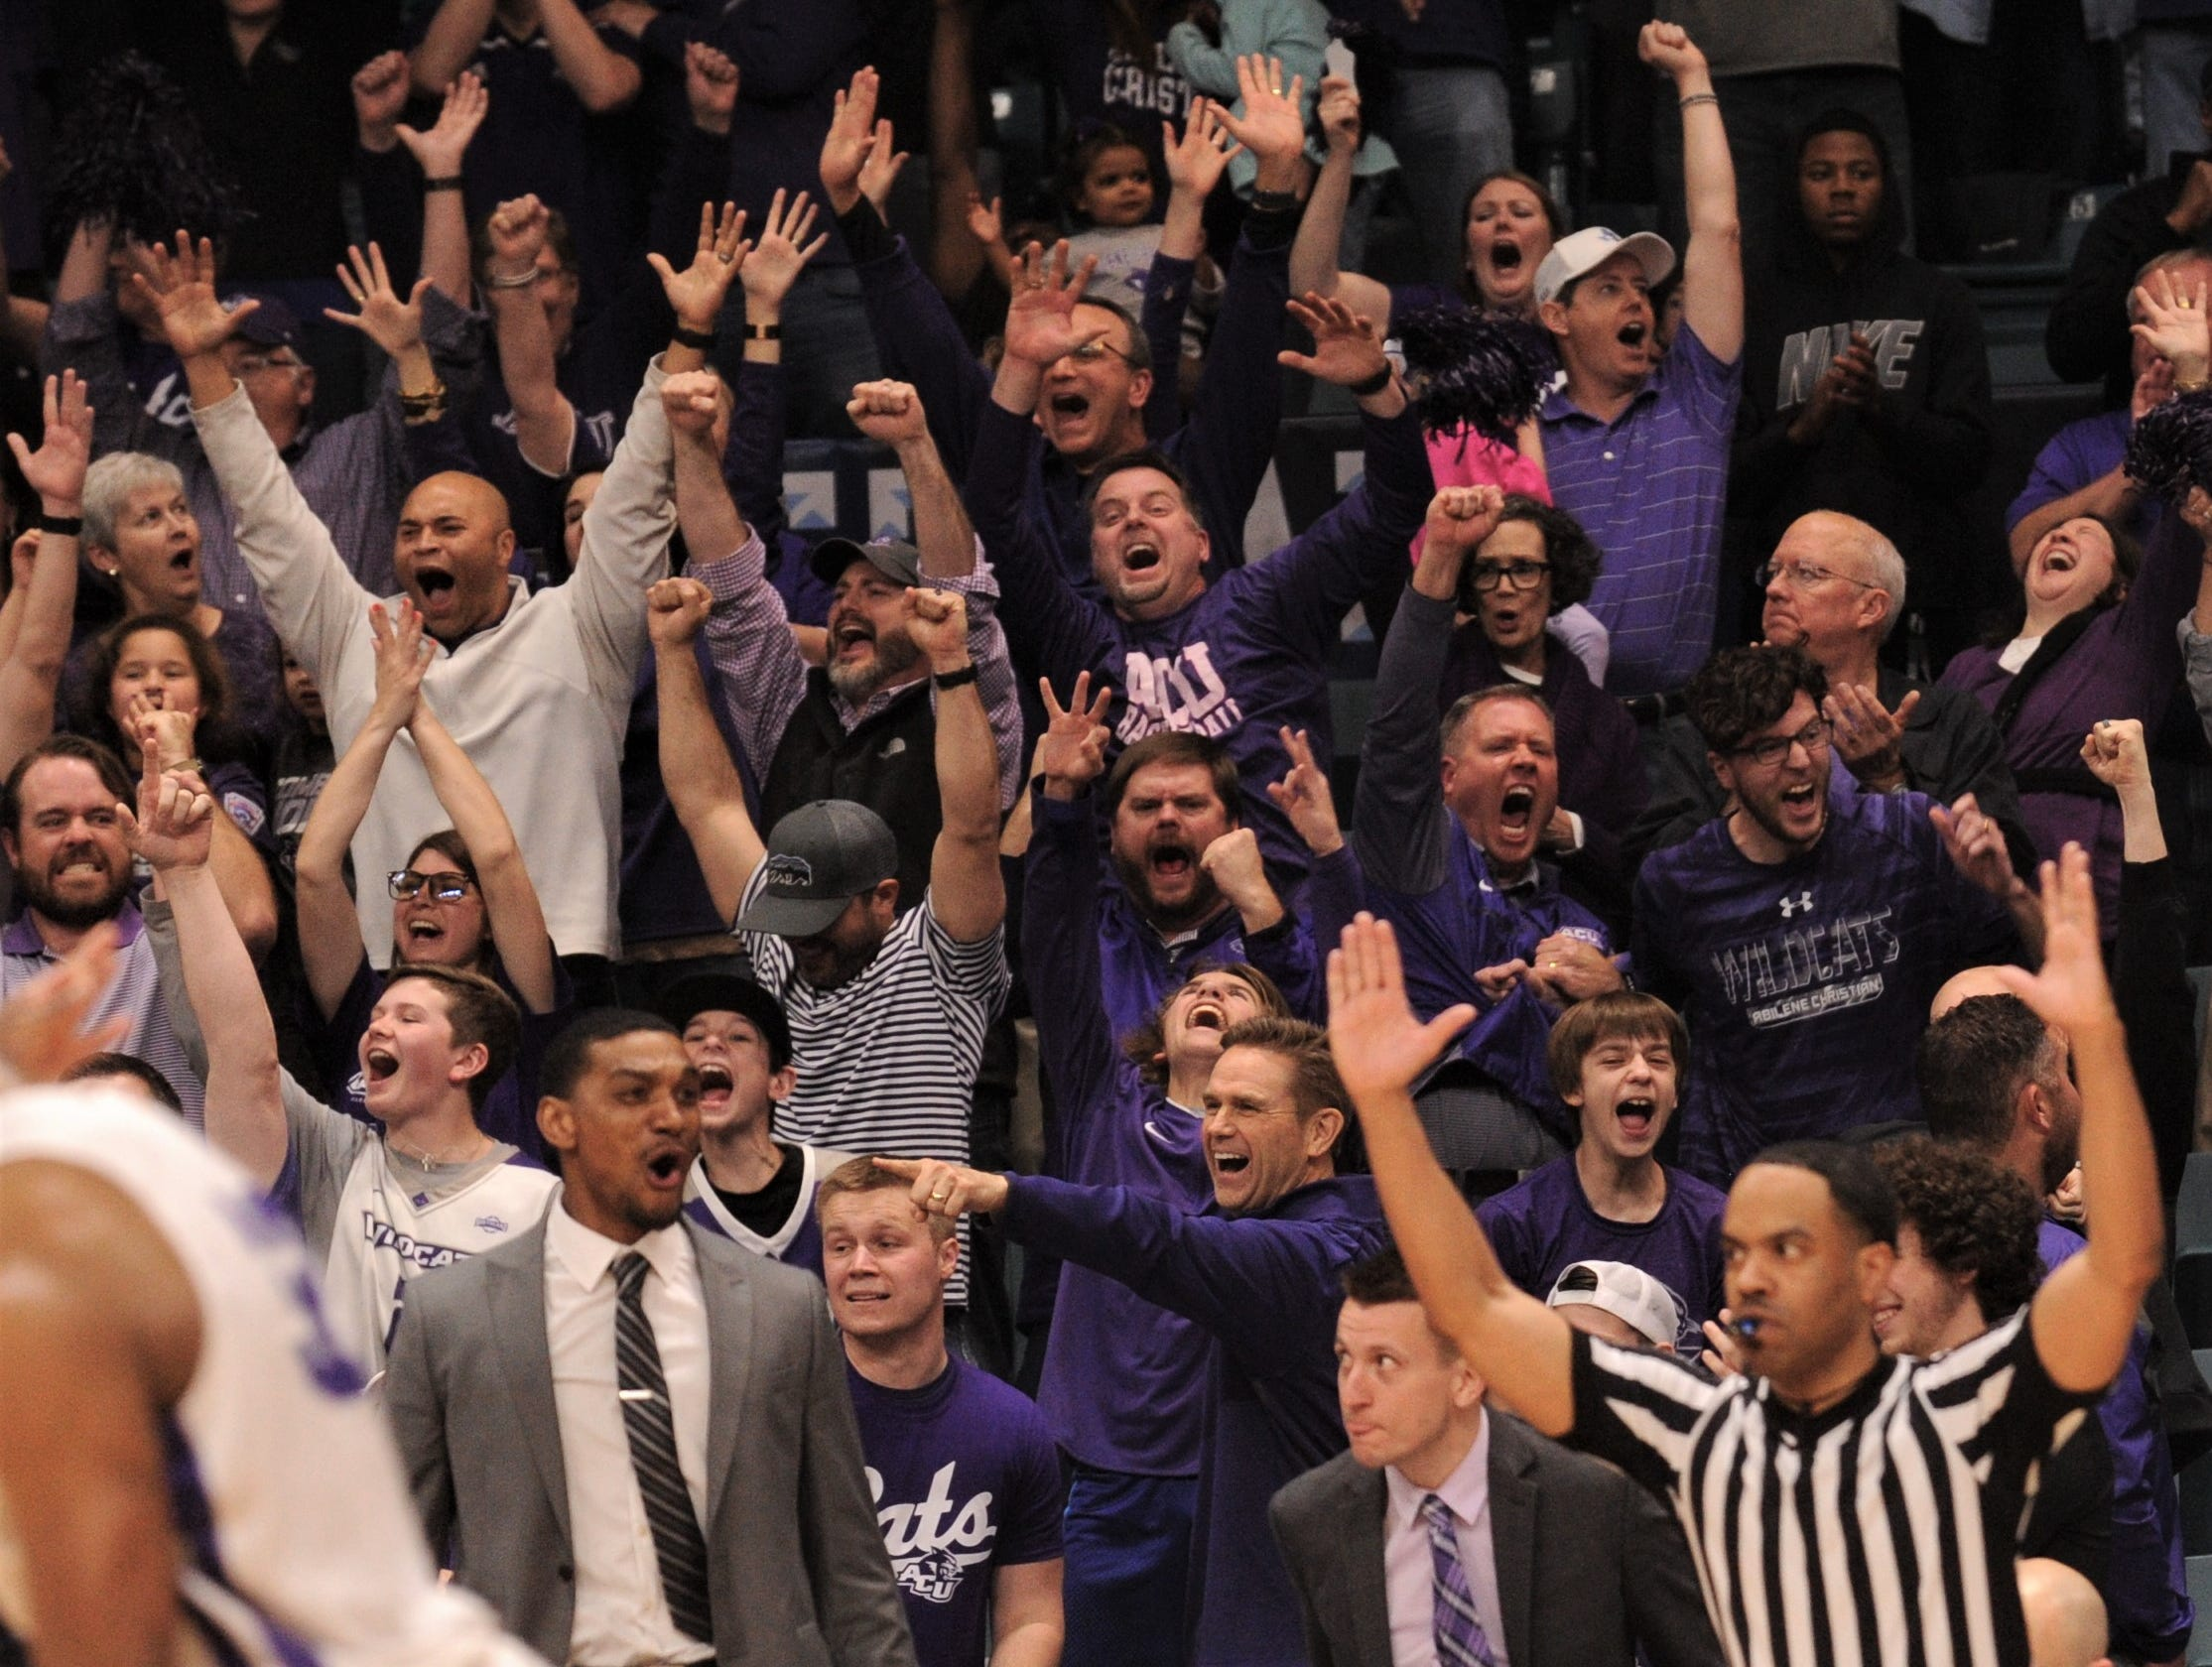 ACU fans celebrate after the Wildcats hit a 3-point play in the second half against New Orleans. ACU beat the Privateers 77-60 to win the Southland Conference Tournament title Saturday, March 16, 2019, at the Merrell Center in Katy.